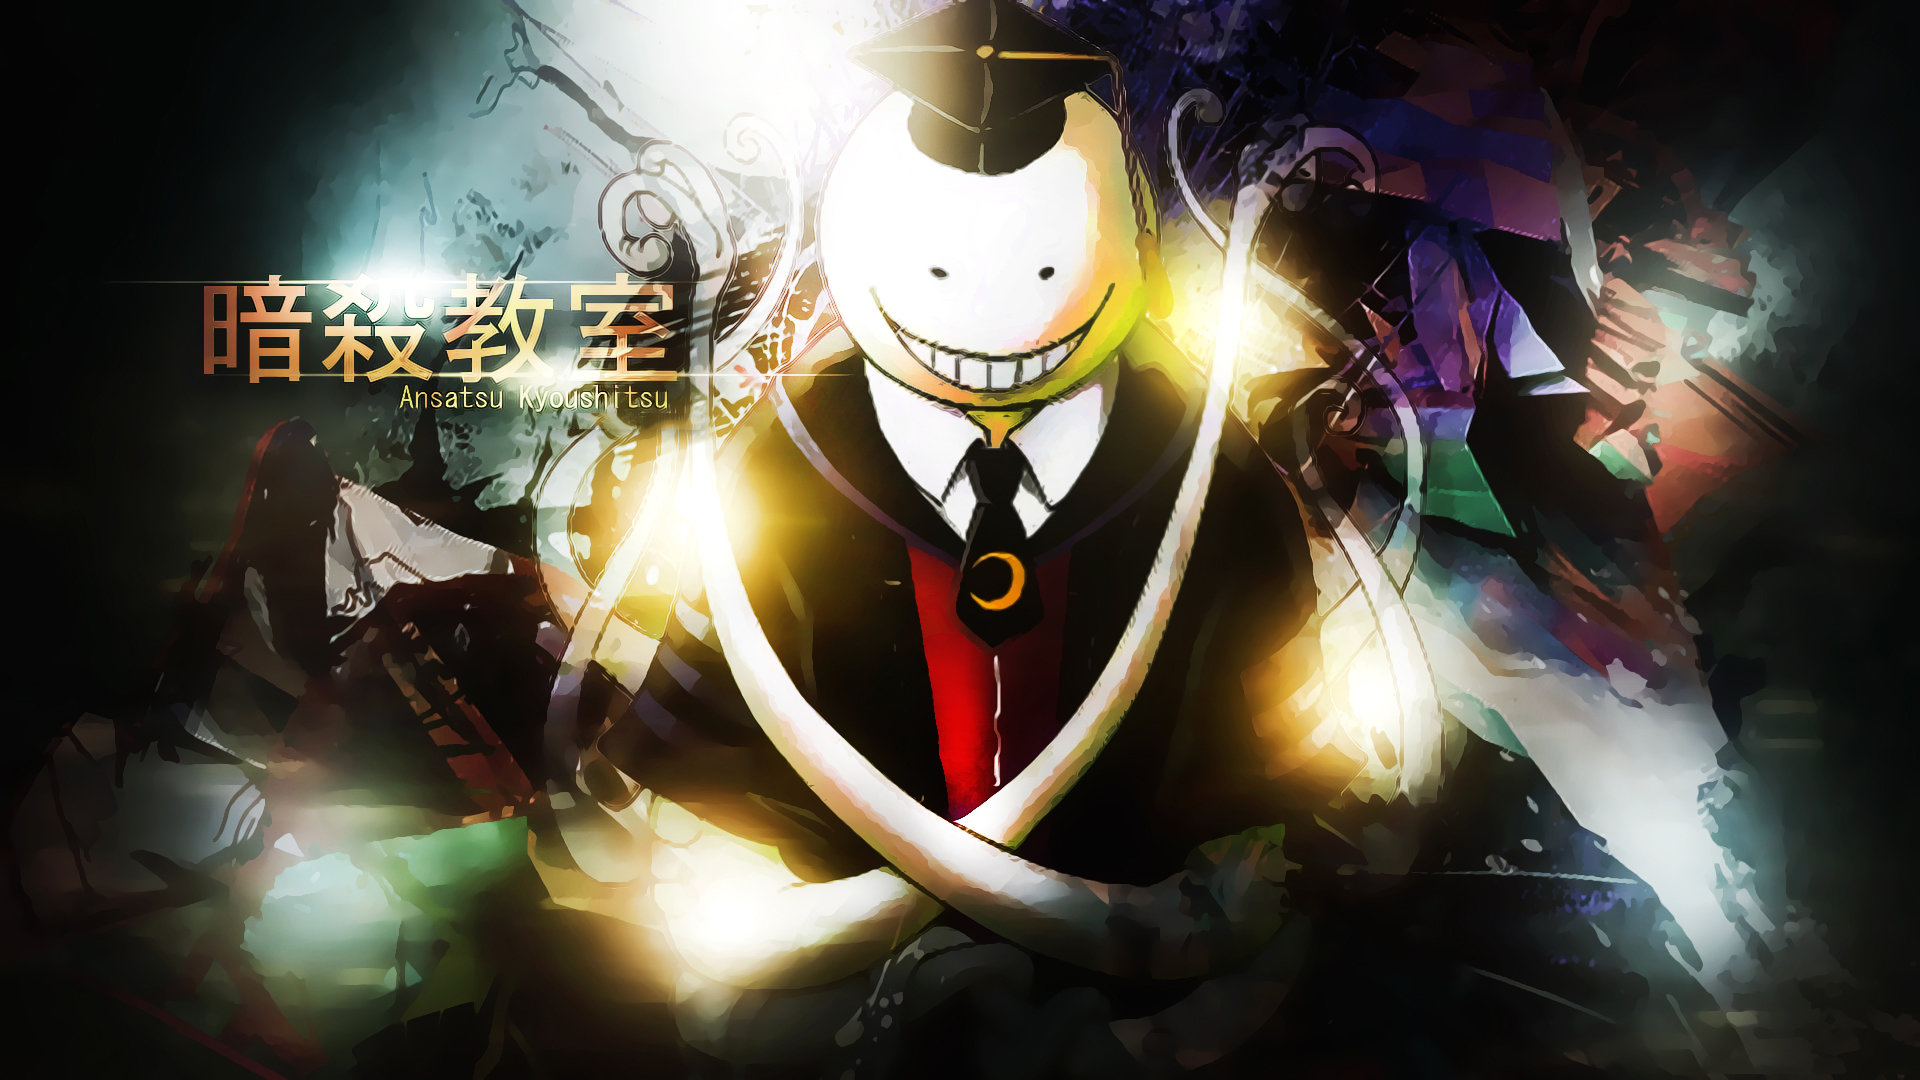 Download full hd 1080p Koro-sensei PC wallpaper ID:275155 for free